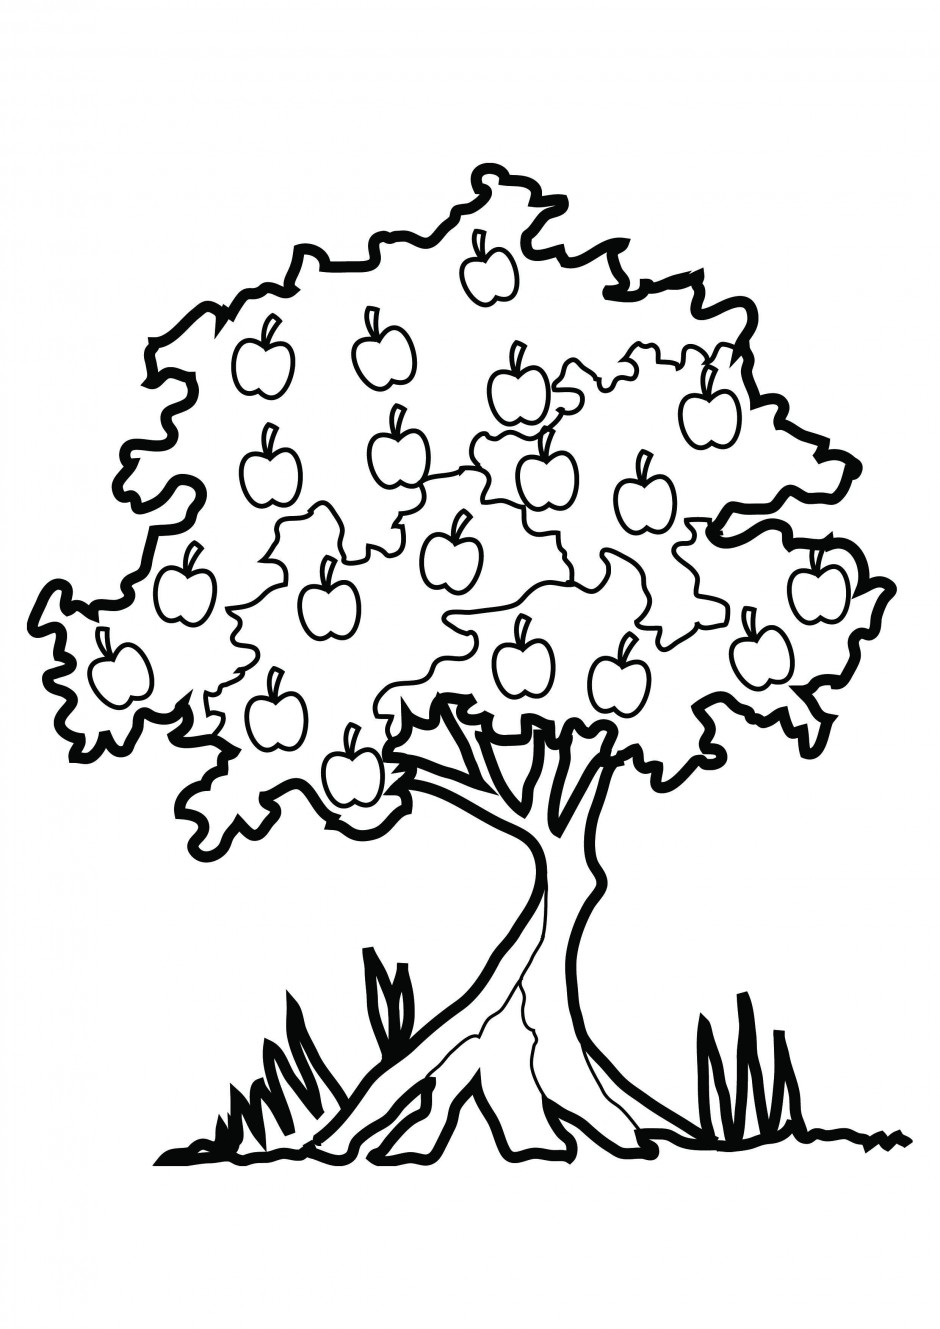 Free clipart black and white wooded areas png black and white stock Bare Tree Clipart Black And White | Free download best Bare Tree ... png black and white stock